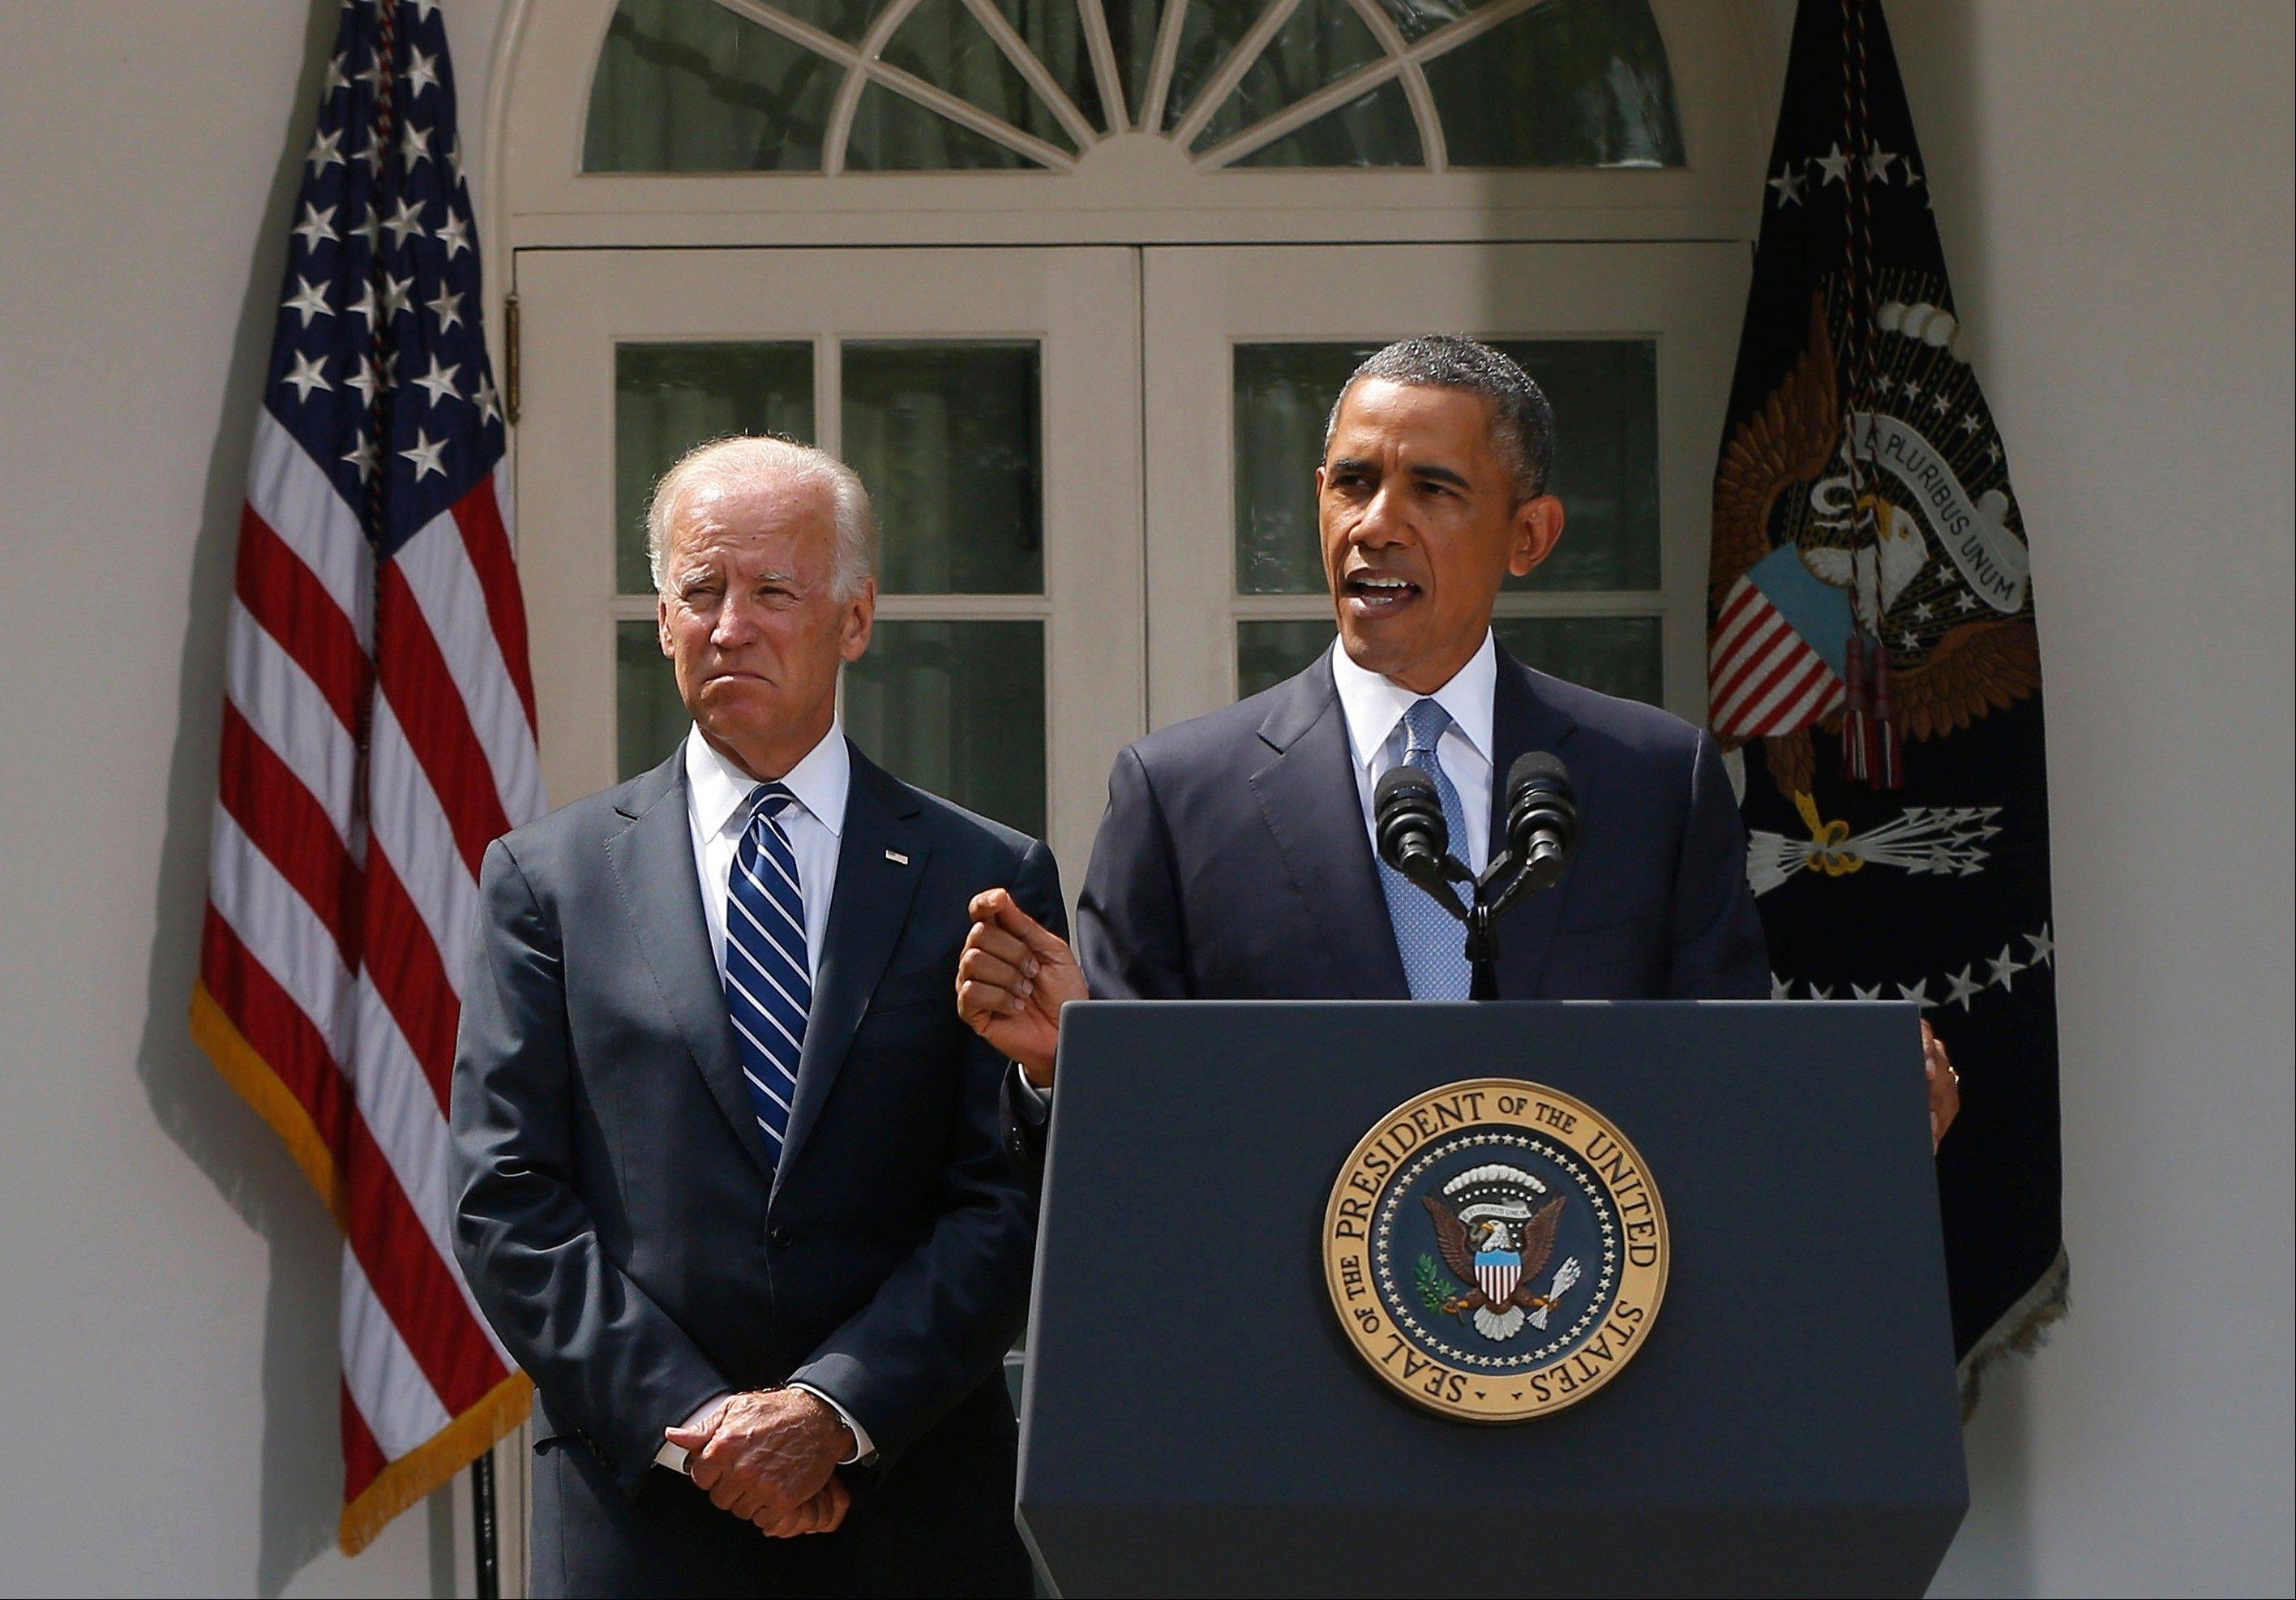 President Barack Obama stands with Vice President Joe Biden Saturday as he makes a statement about the crisis in Syria in the Rose Garden at the White House in Washington.